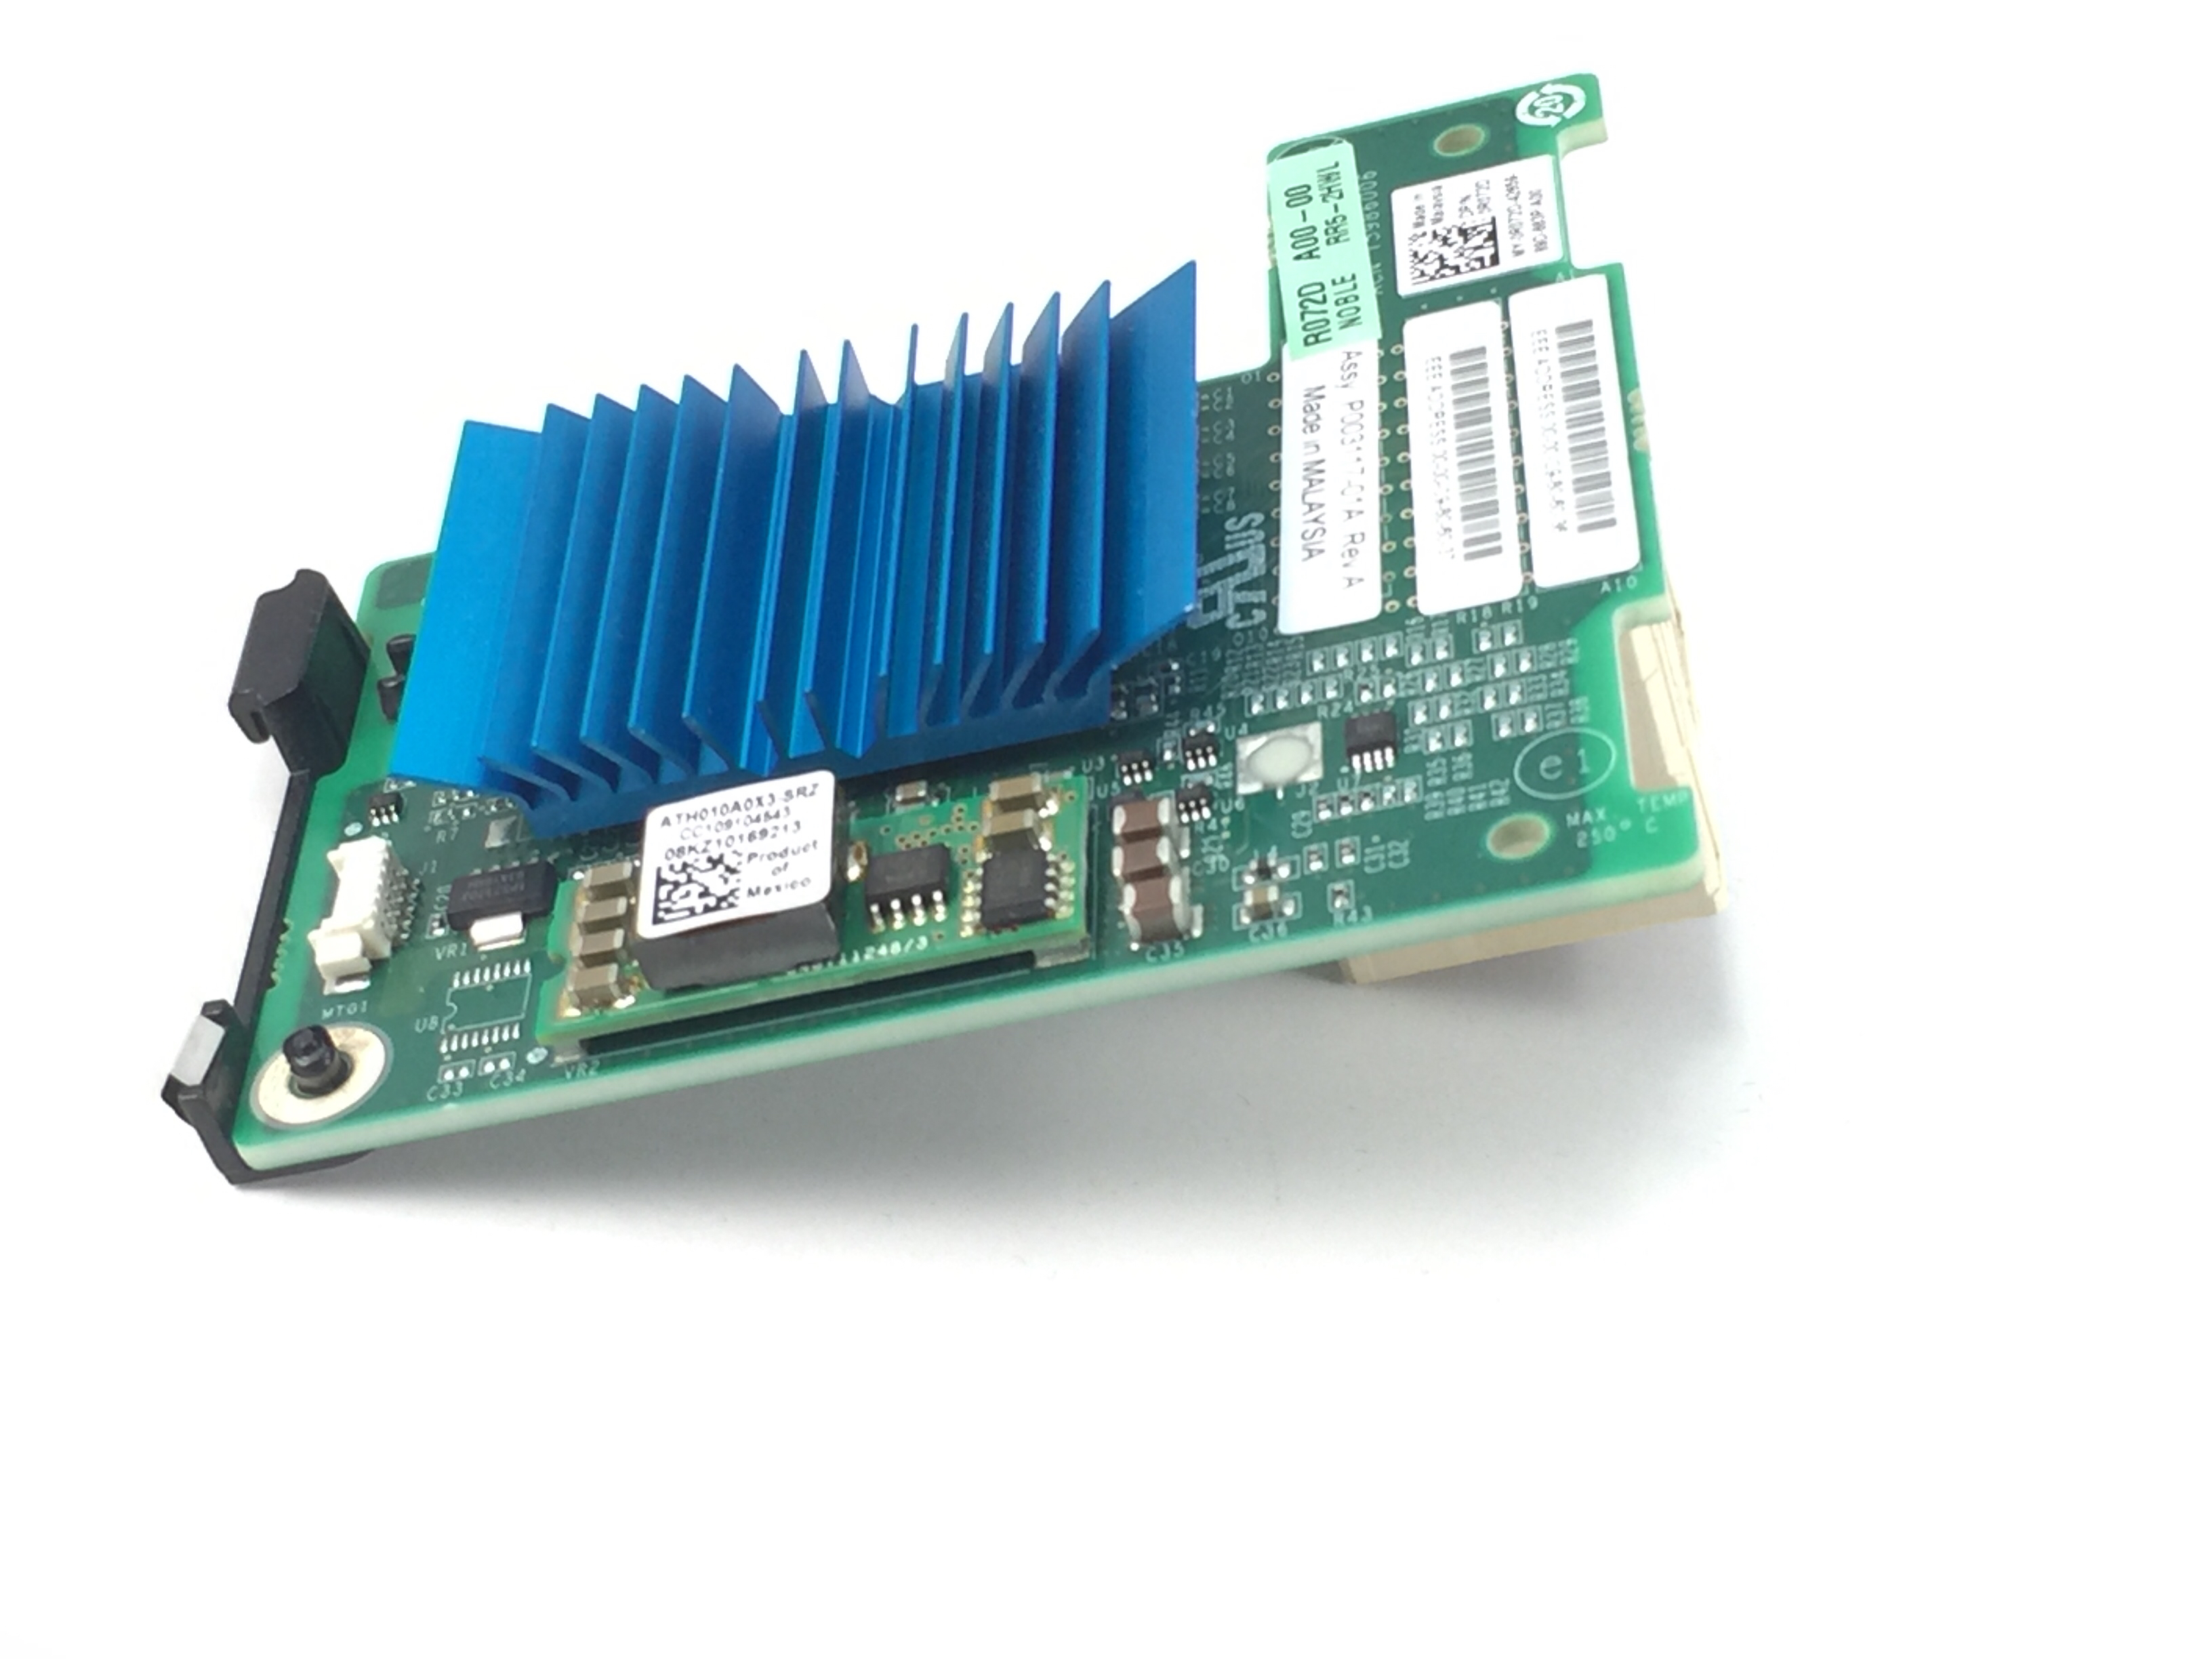 DELL EMULEX LPE1205 8GB FIBRE CHANNEL MEZZANINE CARD (R072D)